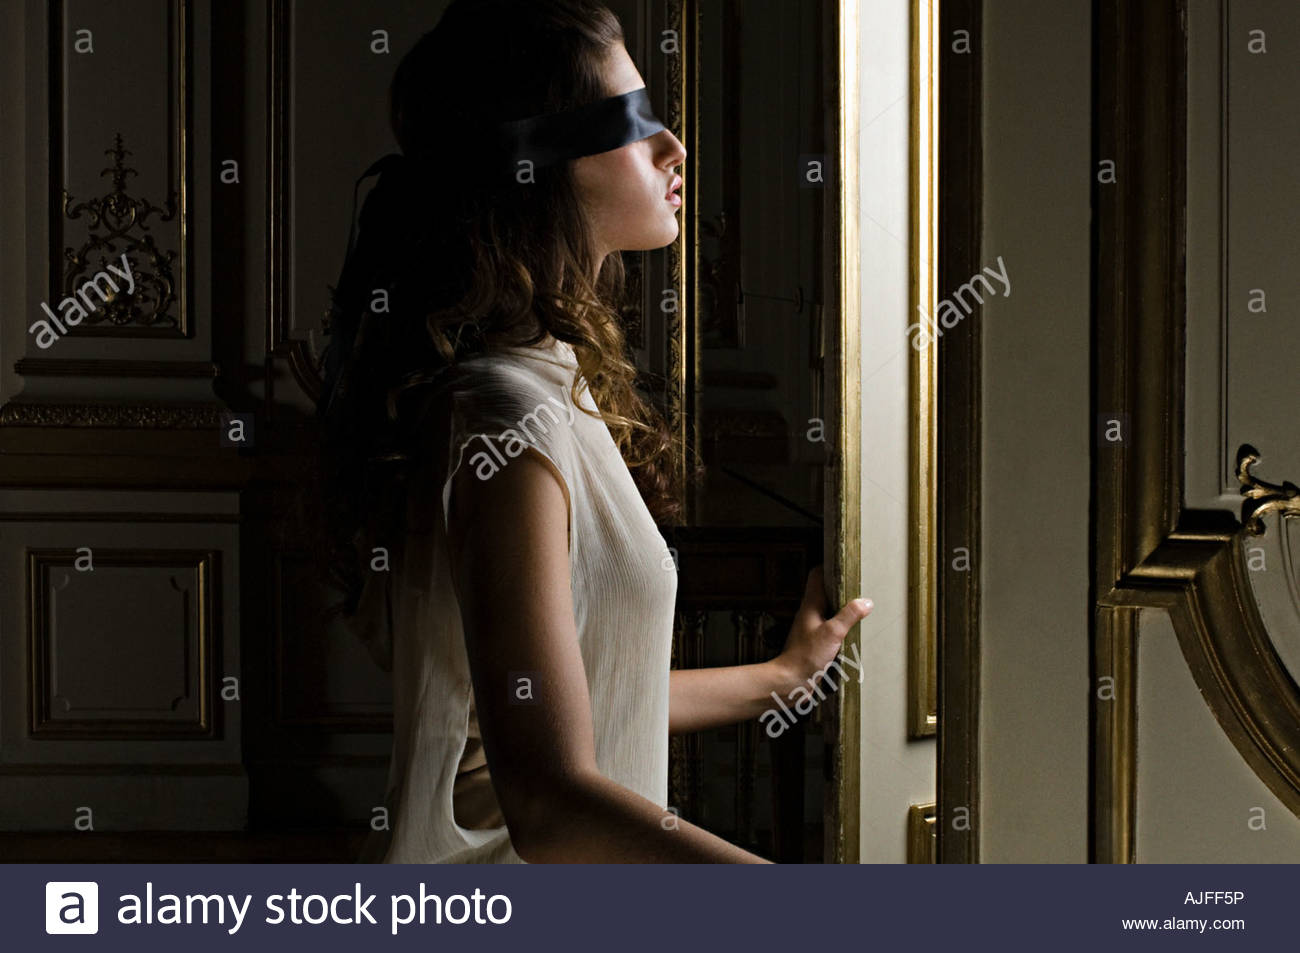 Blindfolded woman opening door - Stock Image